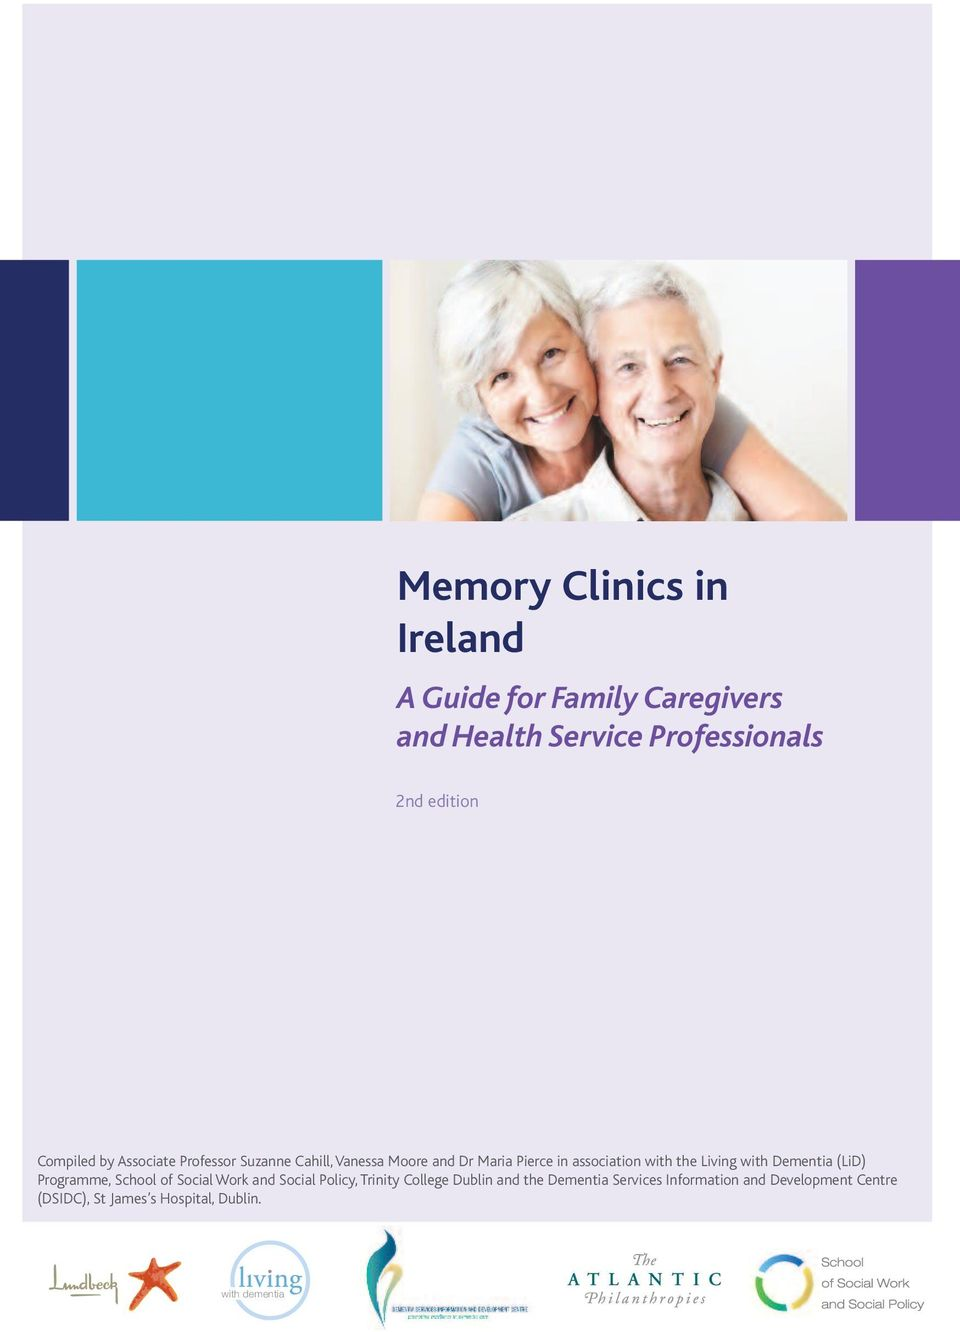 Living with Dementia (LiD) Programme, School of Social Work and Social Policy, Trinity College Dublin and